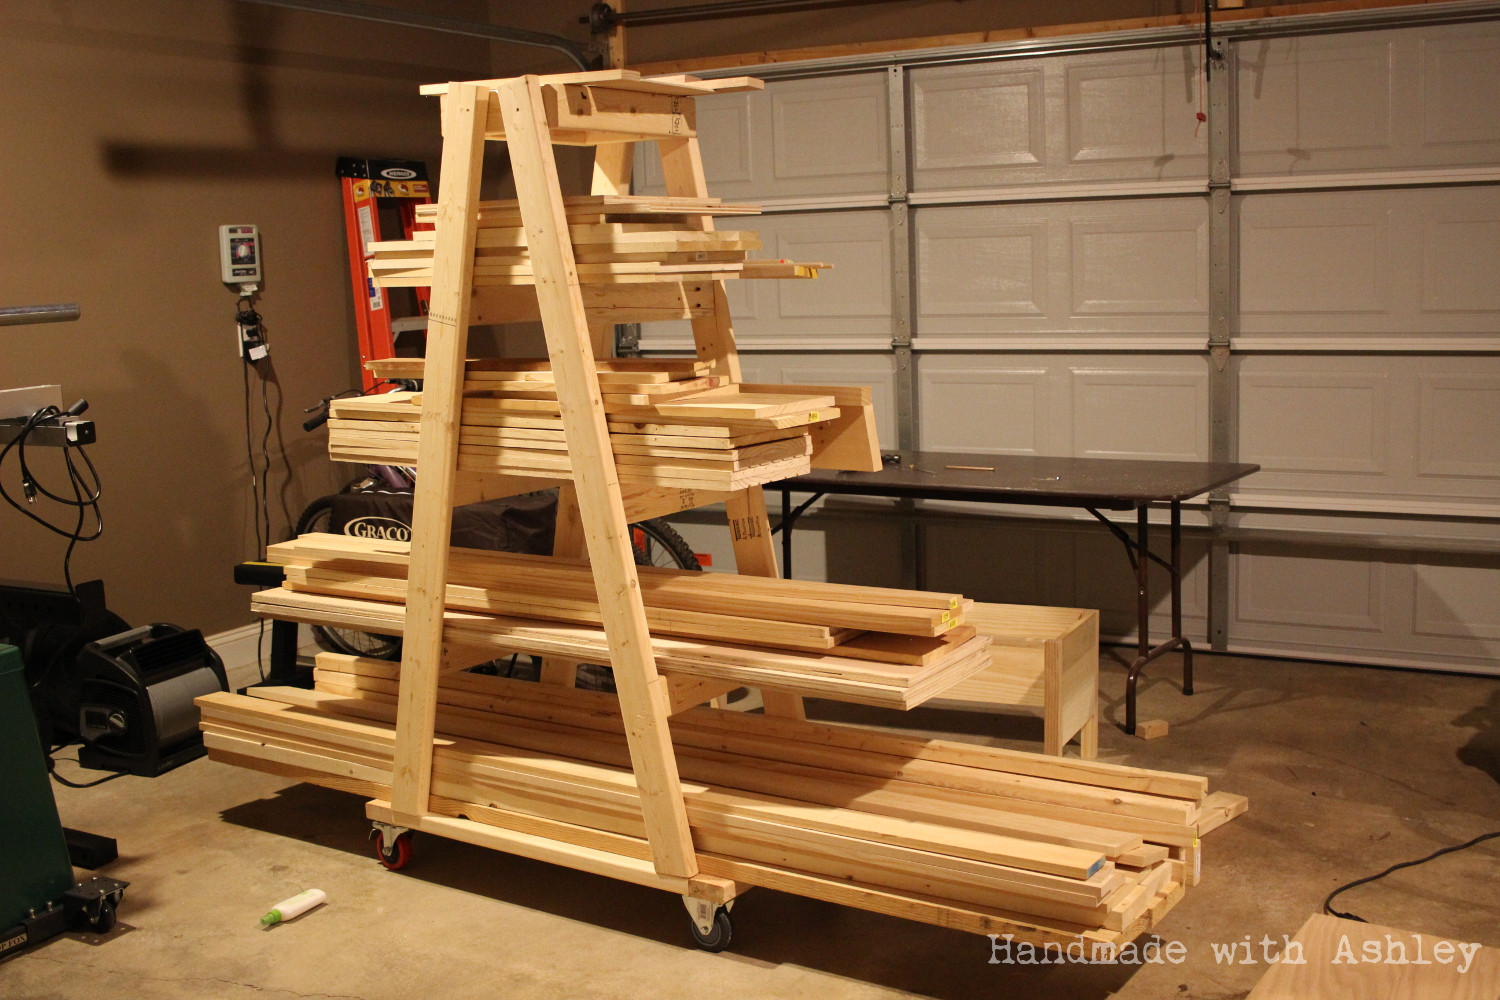 Best ideas about Lumber Rack DIY . Save or Pin DIY Mobile Lumber Rack Plans by Rogue Engineer Now.